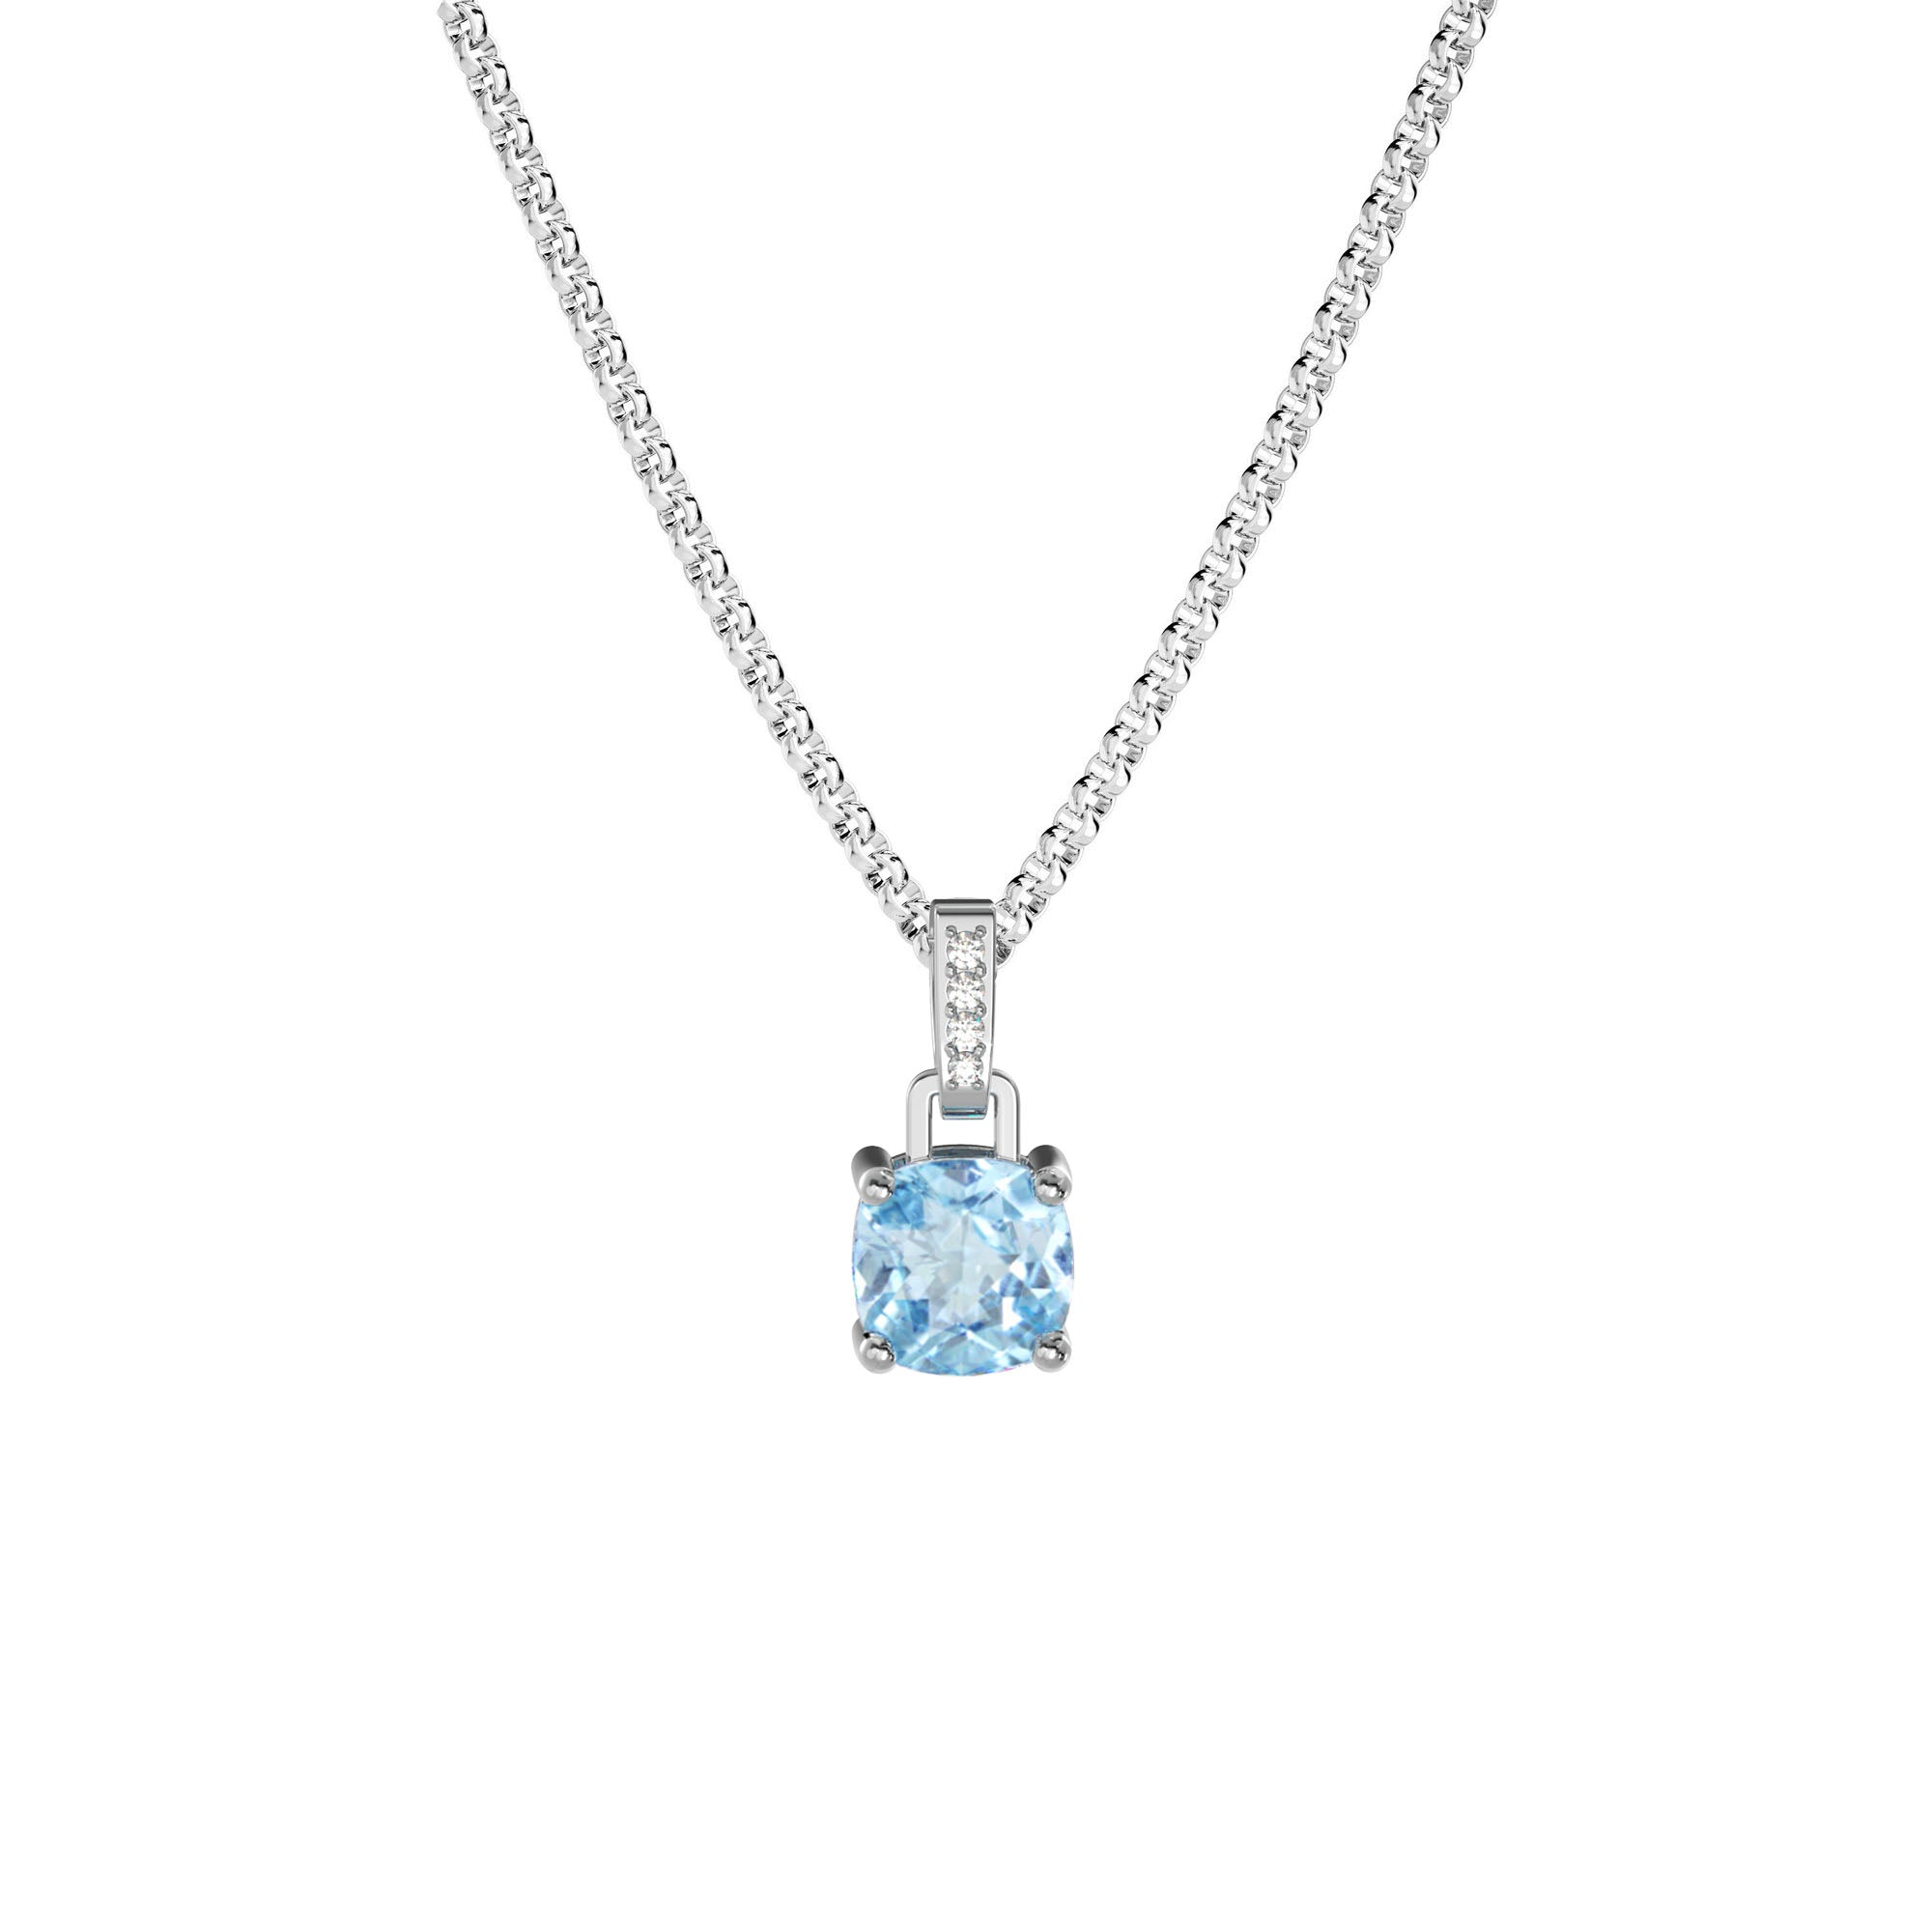 925 Silver Classic Series Necklace - Felicia (Topaz)